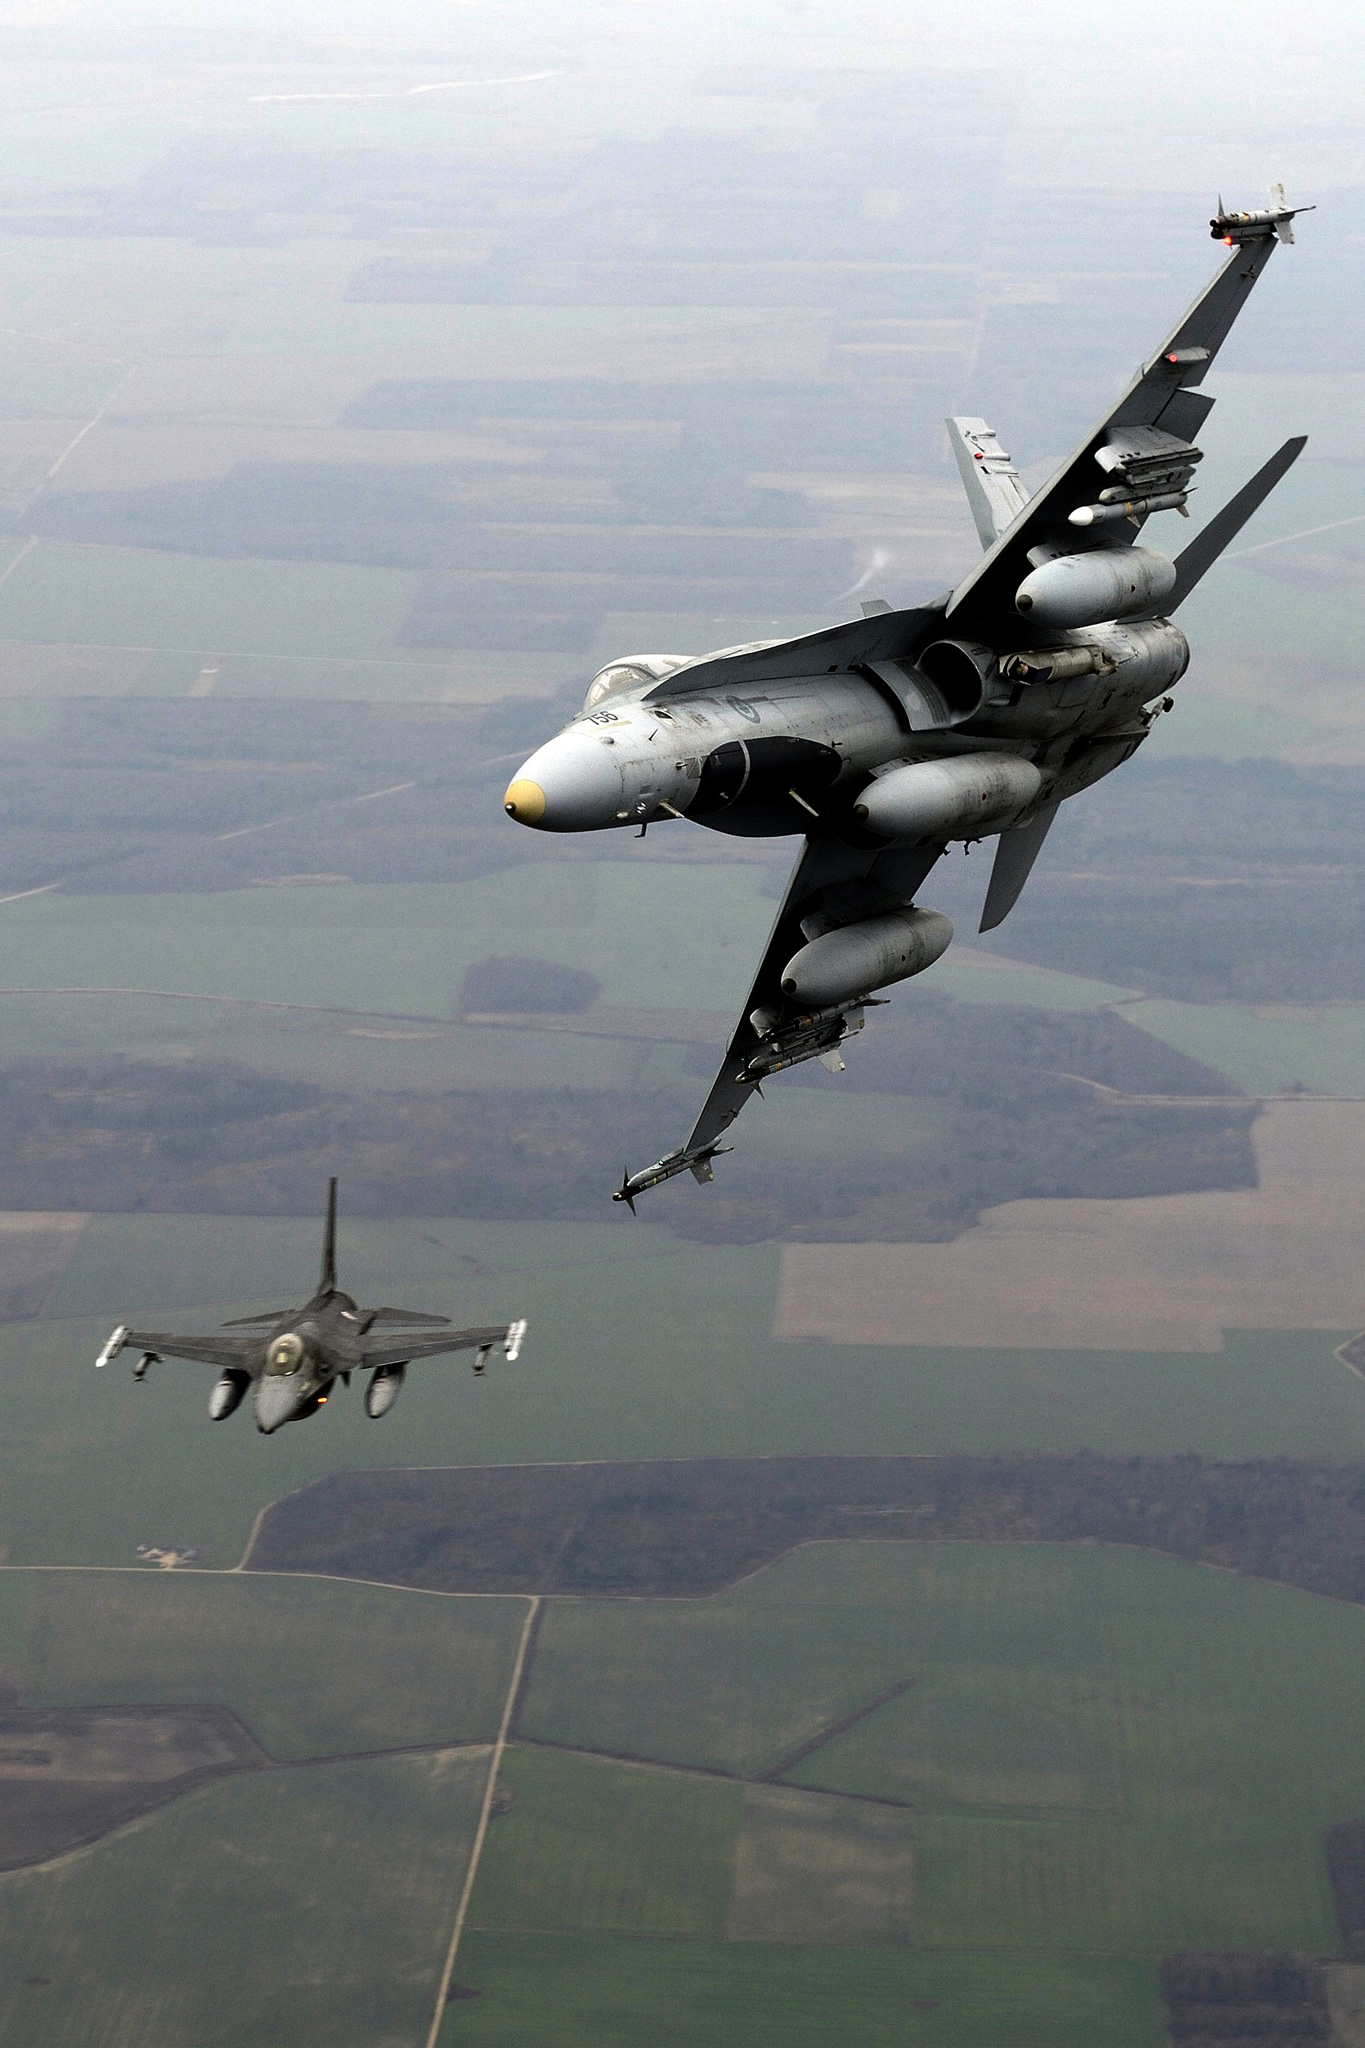 Lithuania. 20 November 2014 – A CF-188 Hornet from the Canadian Air Task Force Lithuania flies side by side with a Portuguese F16 Fighting Falcon over Lithuania on November 20, 2014 for the NATO Baltic Air Policing Block 36 during Operation REASSURANCE. (Photo: Air Task Force — OP Reassurance, DND)